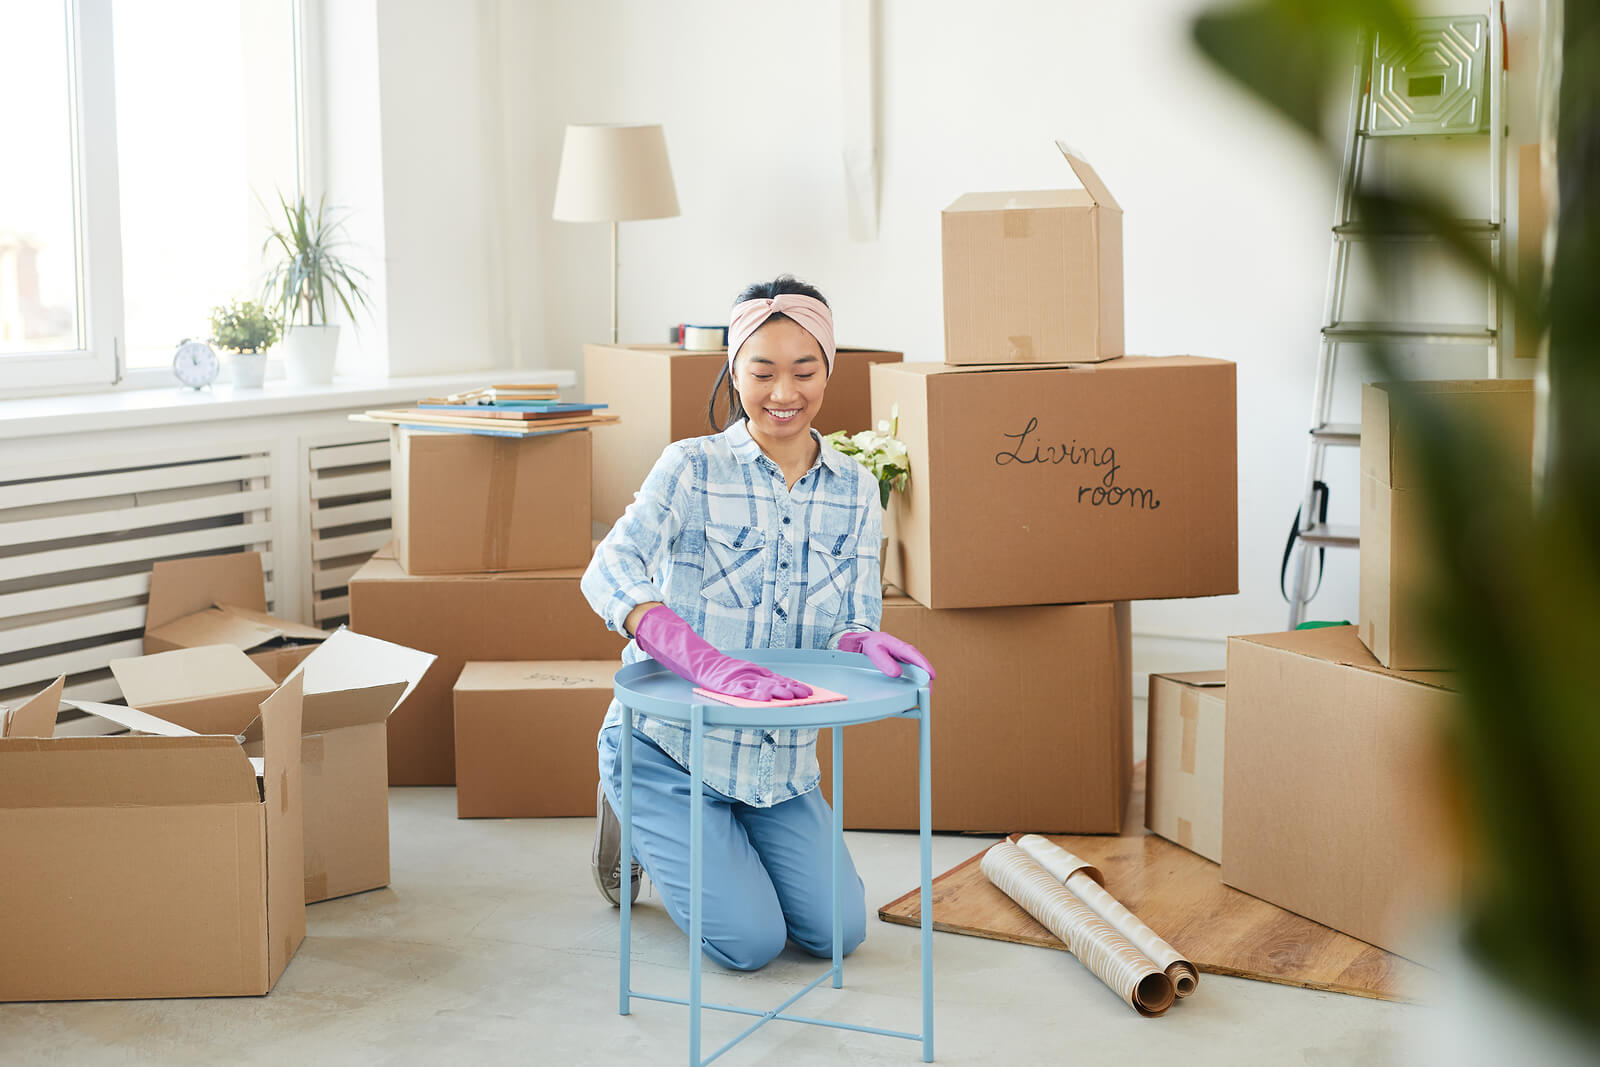 North Shore Maids offers the most comprehensive move in and move out services in the area.